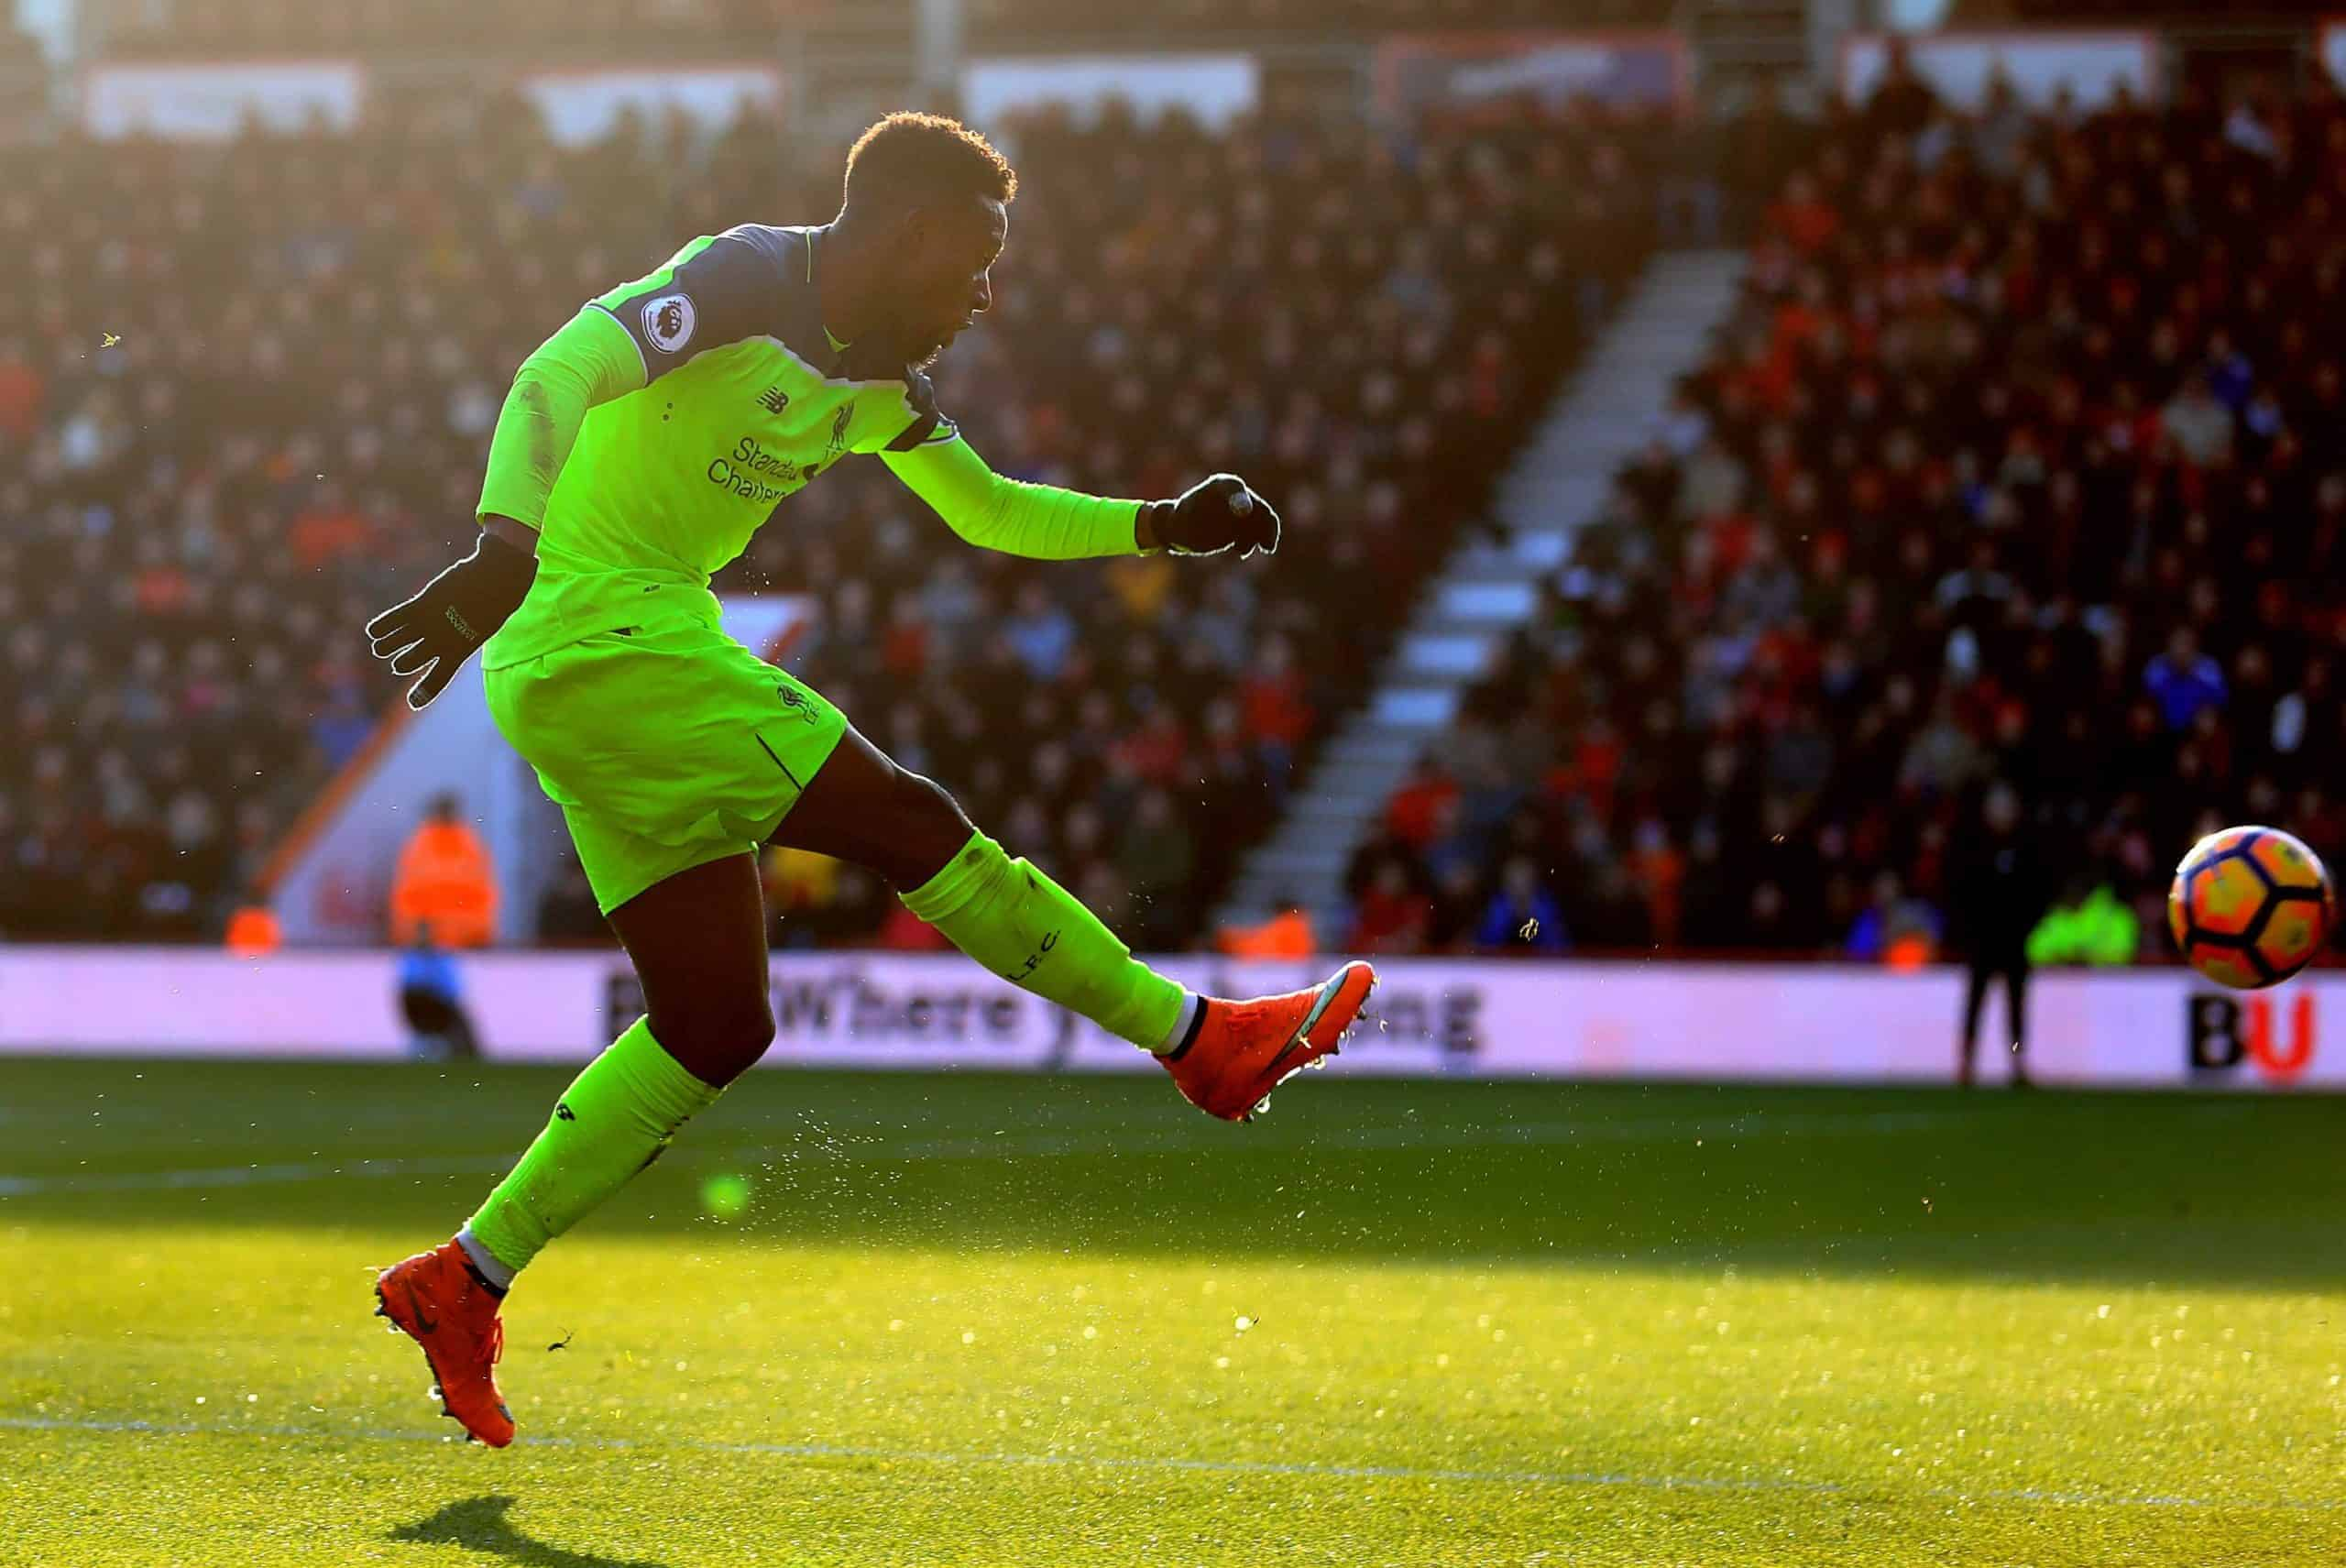 Liverpool's Divock Origi scores his side's second goal of the game during the Premier League match at the Vitality Stadium, Bournemouth. 2016. (Picture by Adam Davy PA Wire/PA Images)